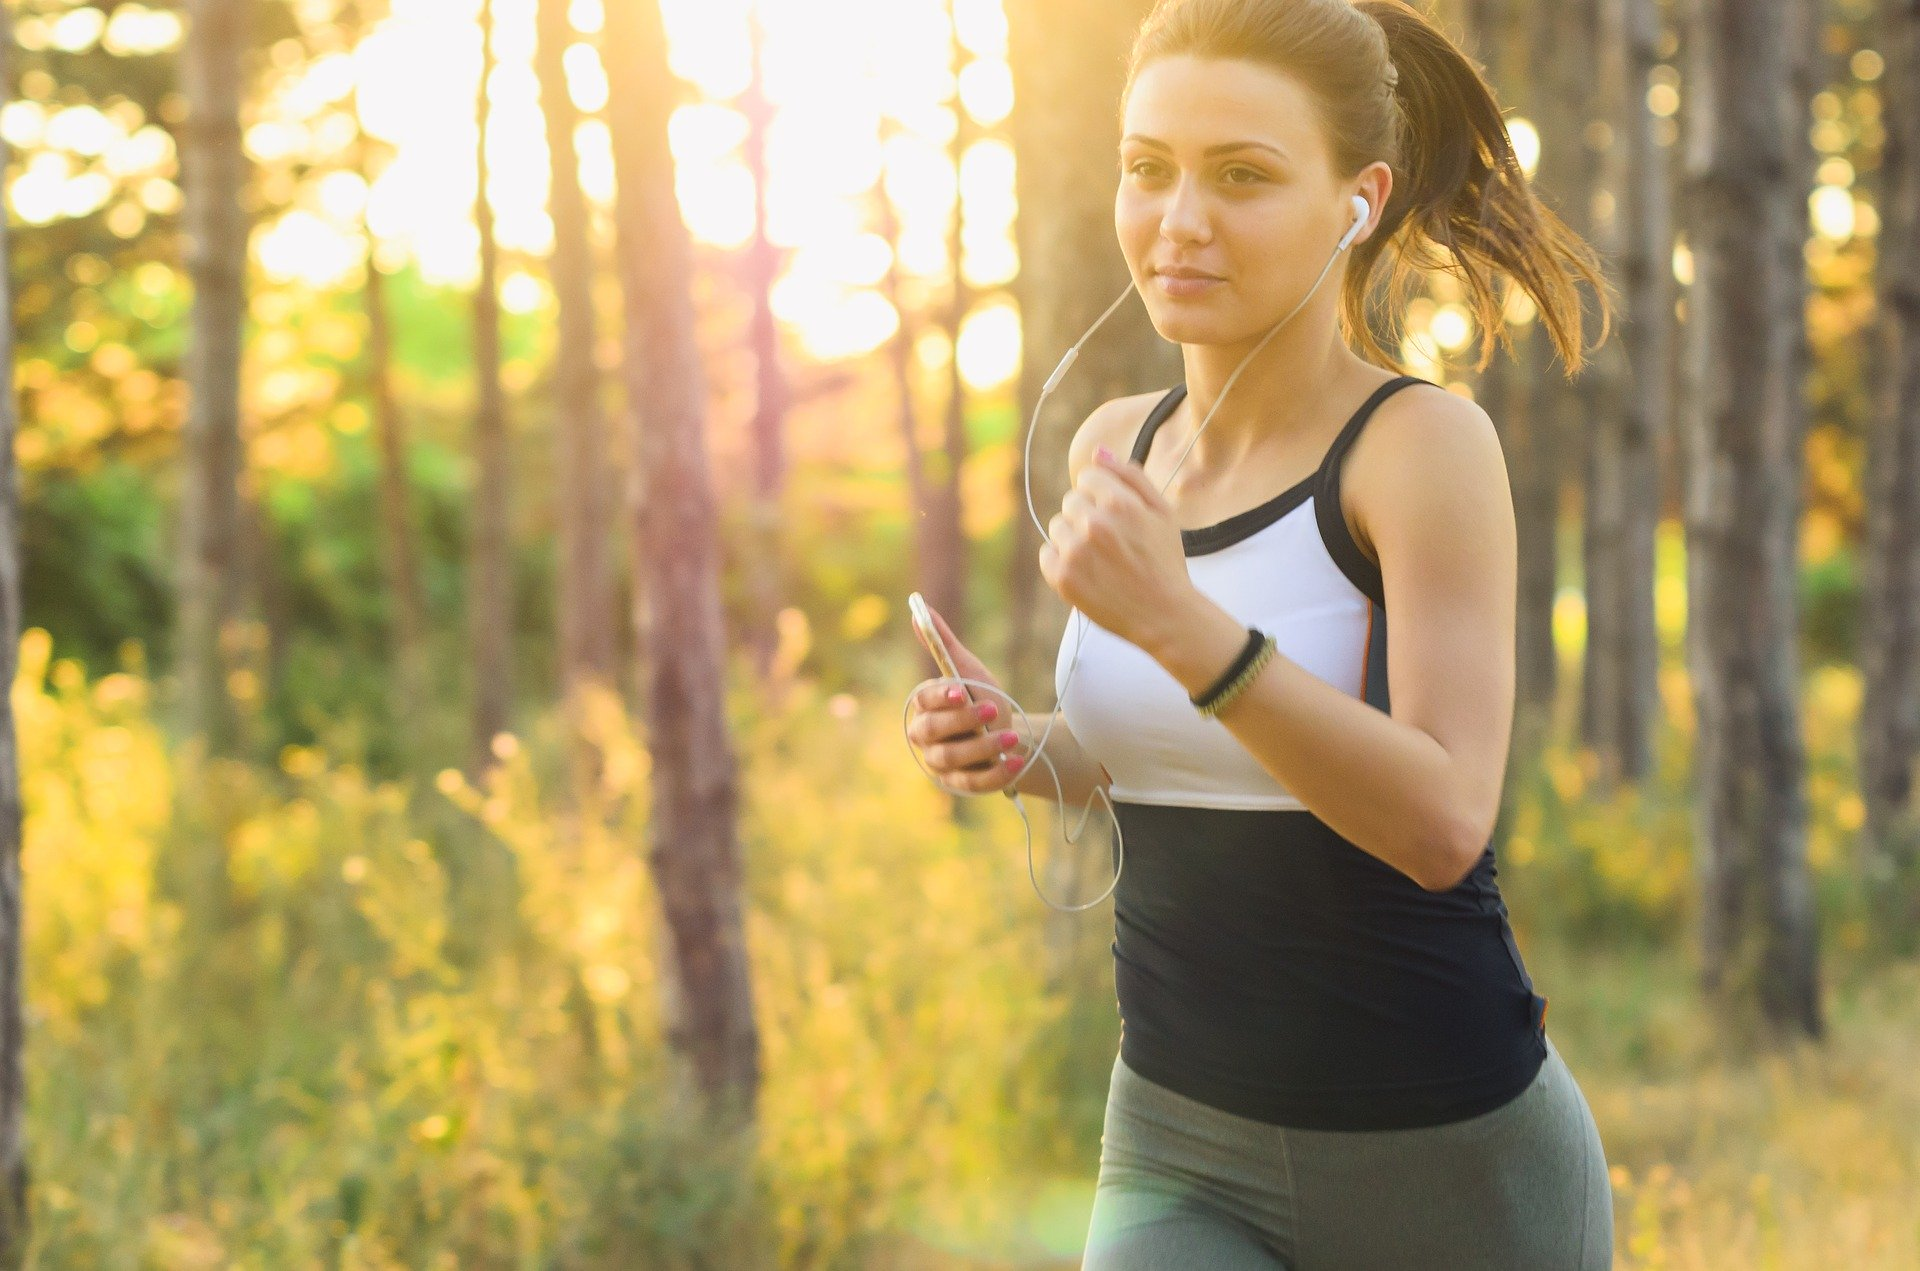 running with music